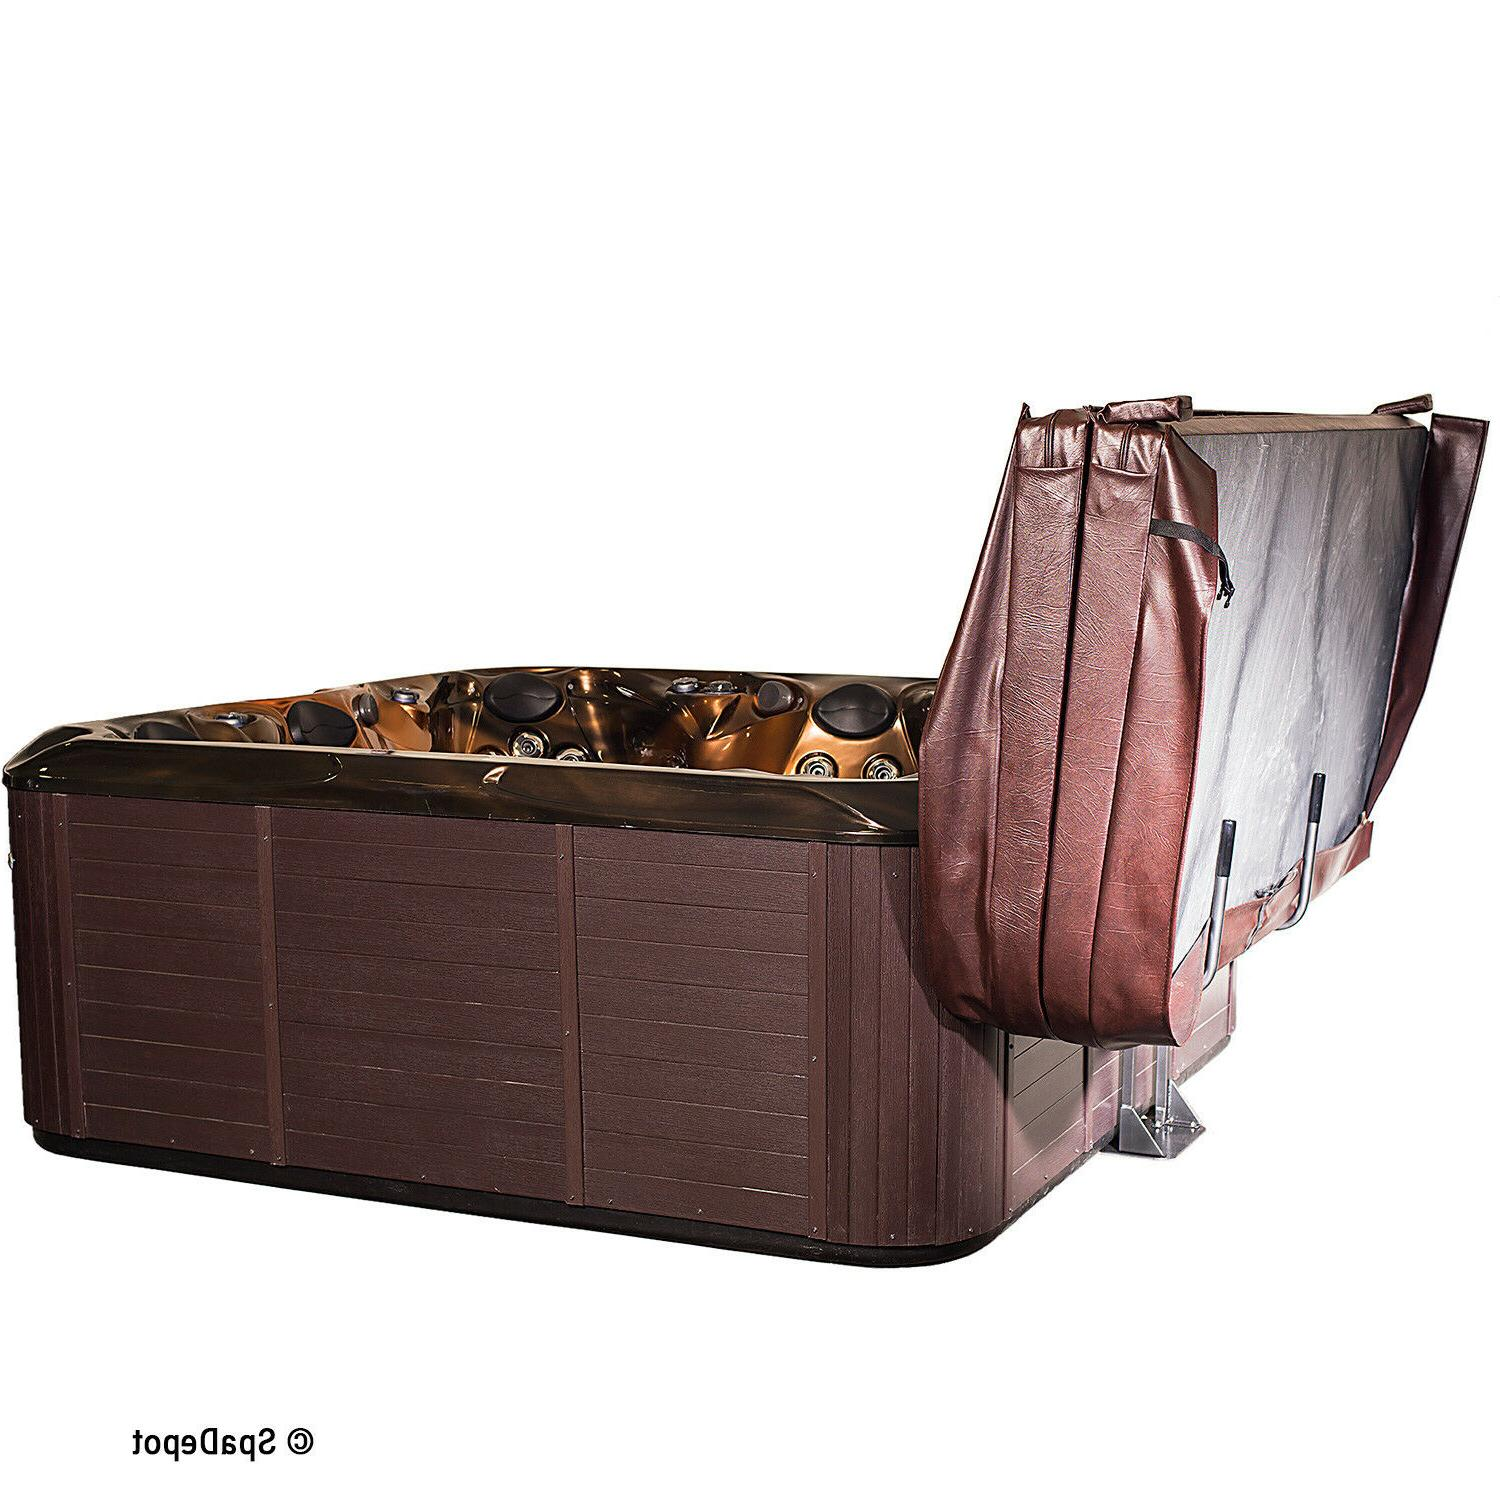 Hot Tub Cover Captain Lift - Hydraulic Undermount Spa Cover